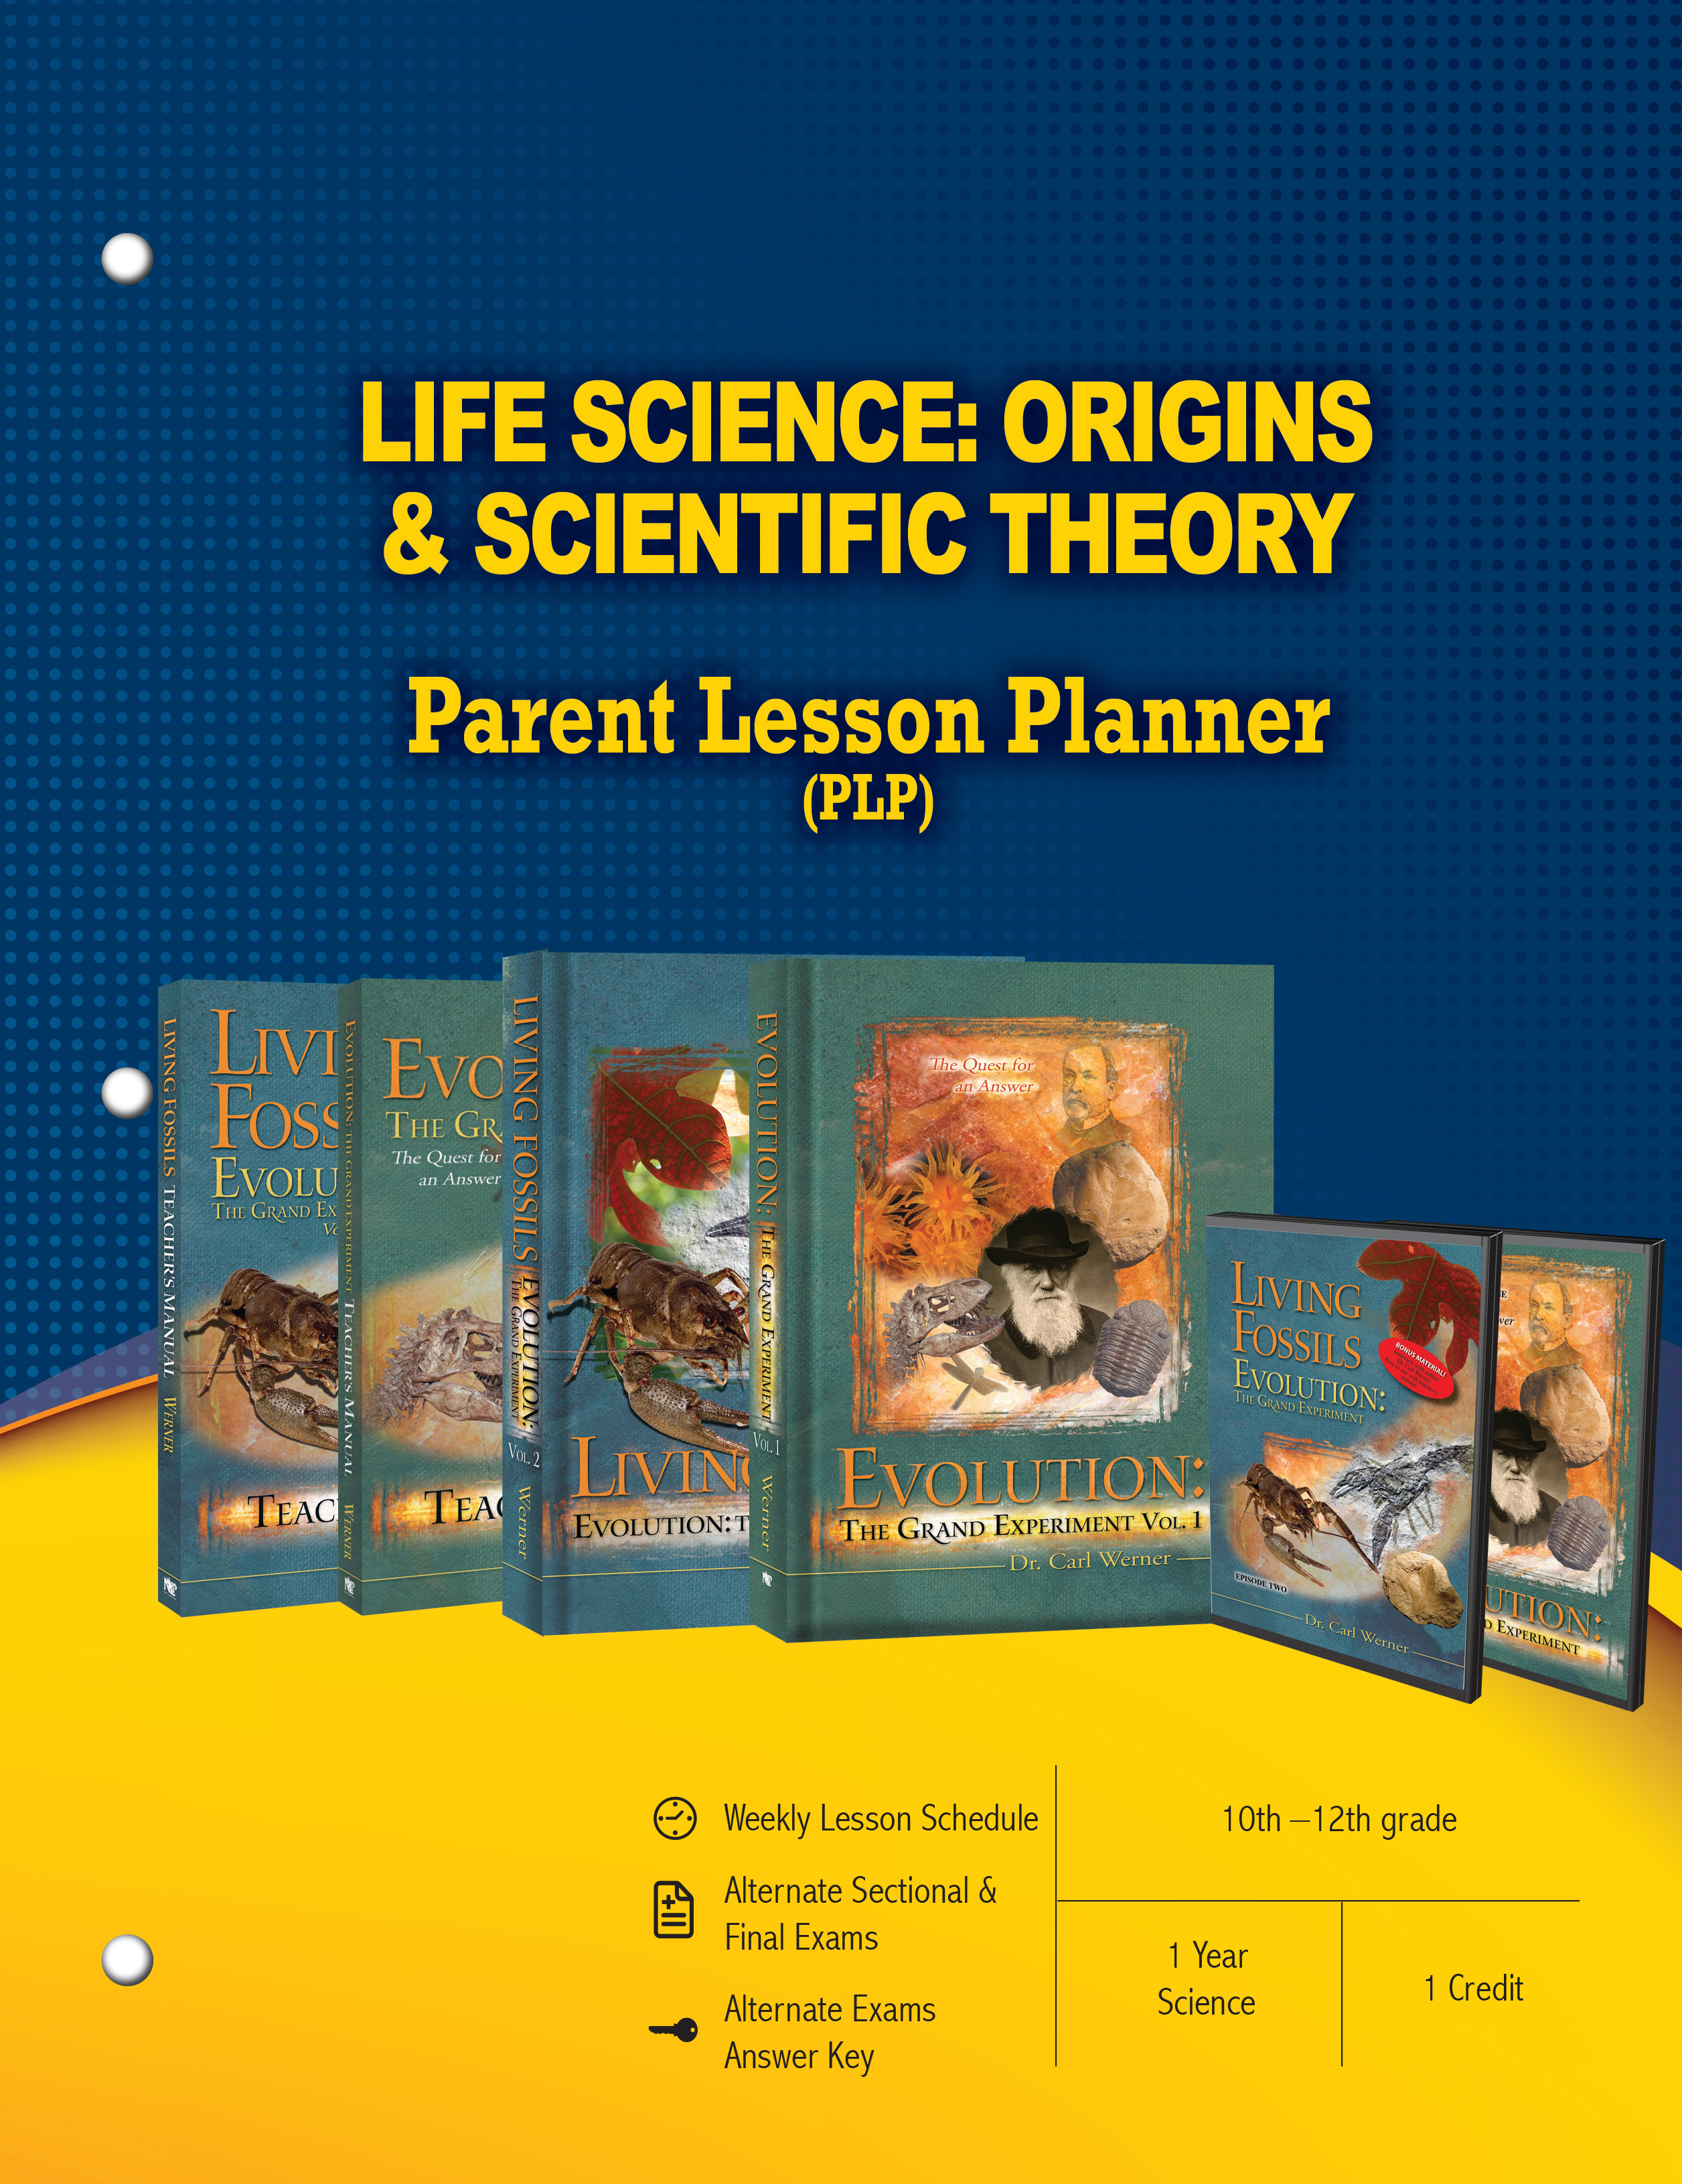 Life Science Origins & Scientific Theory Package